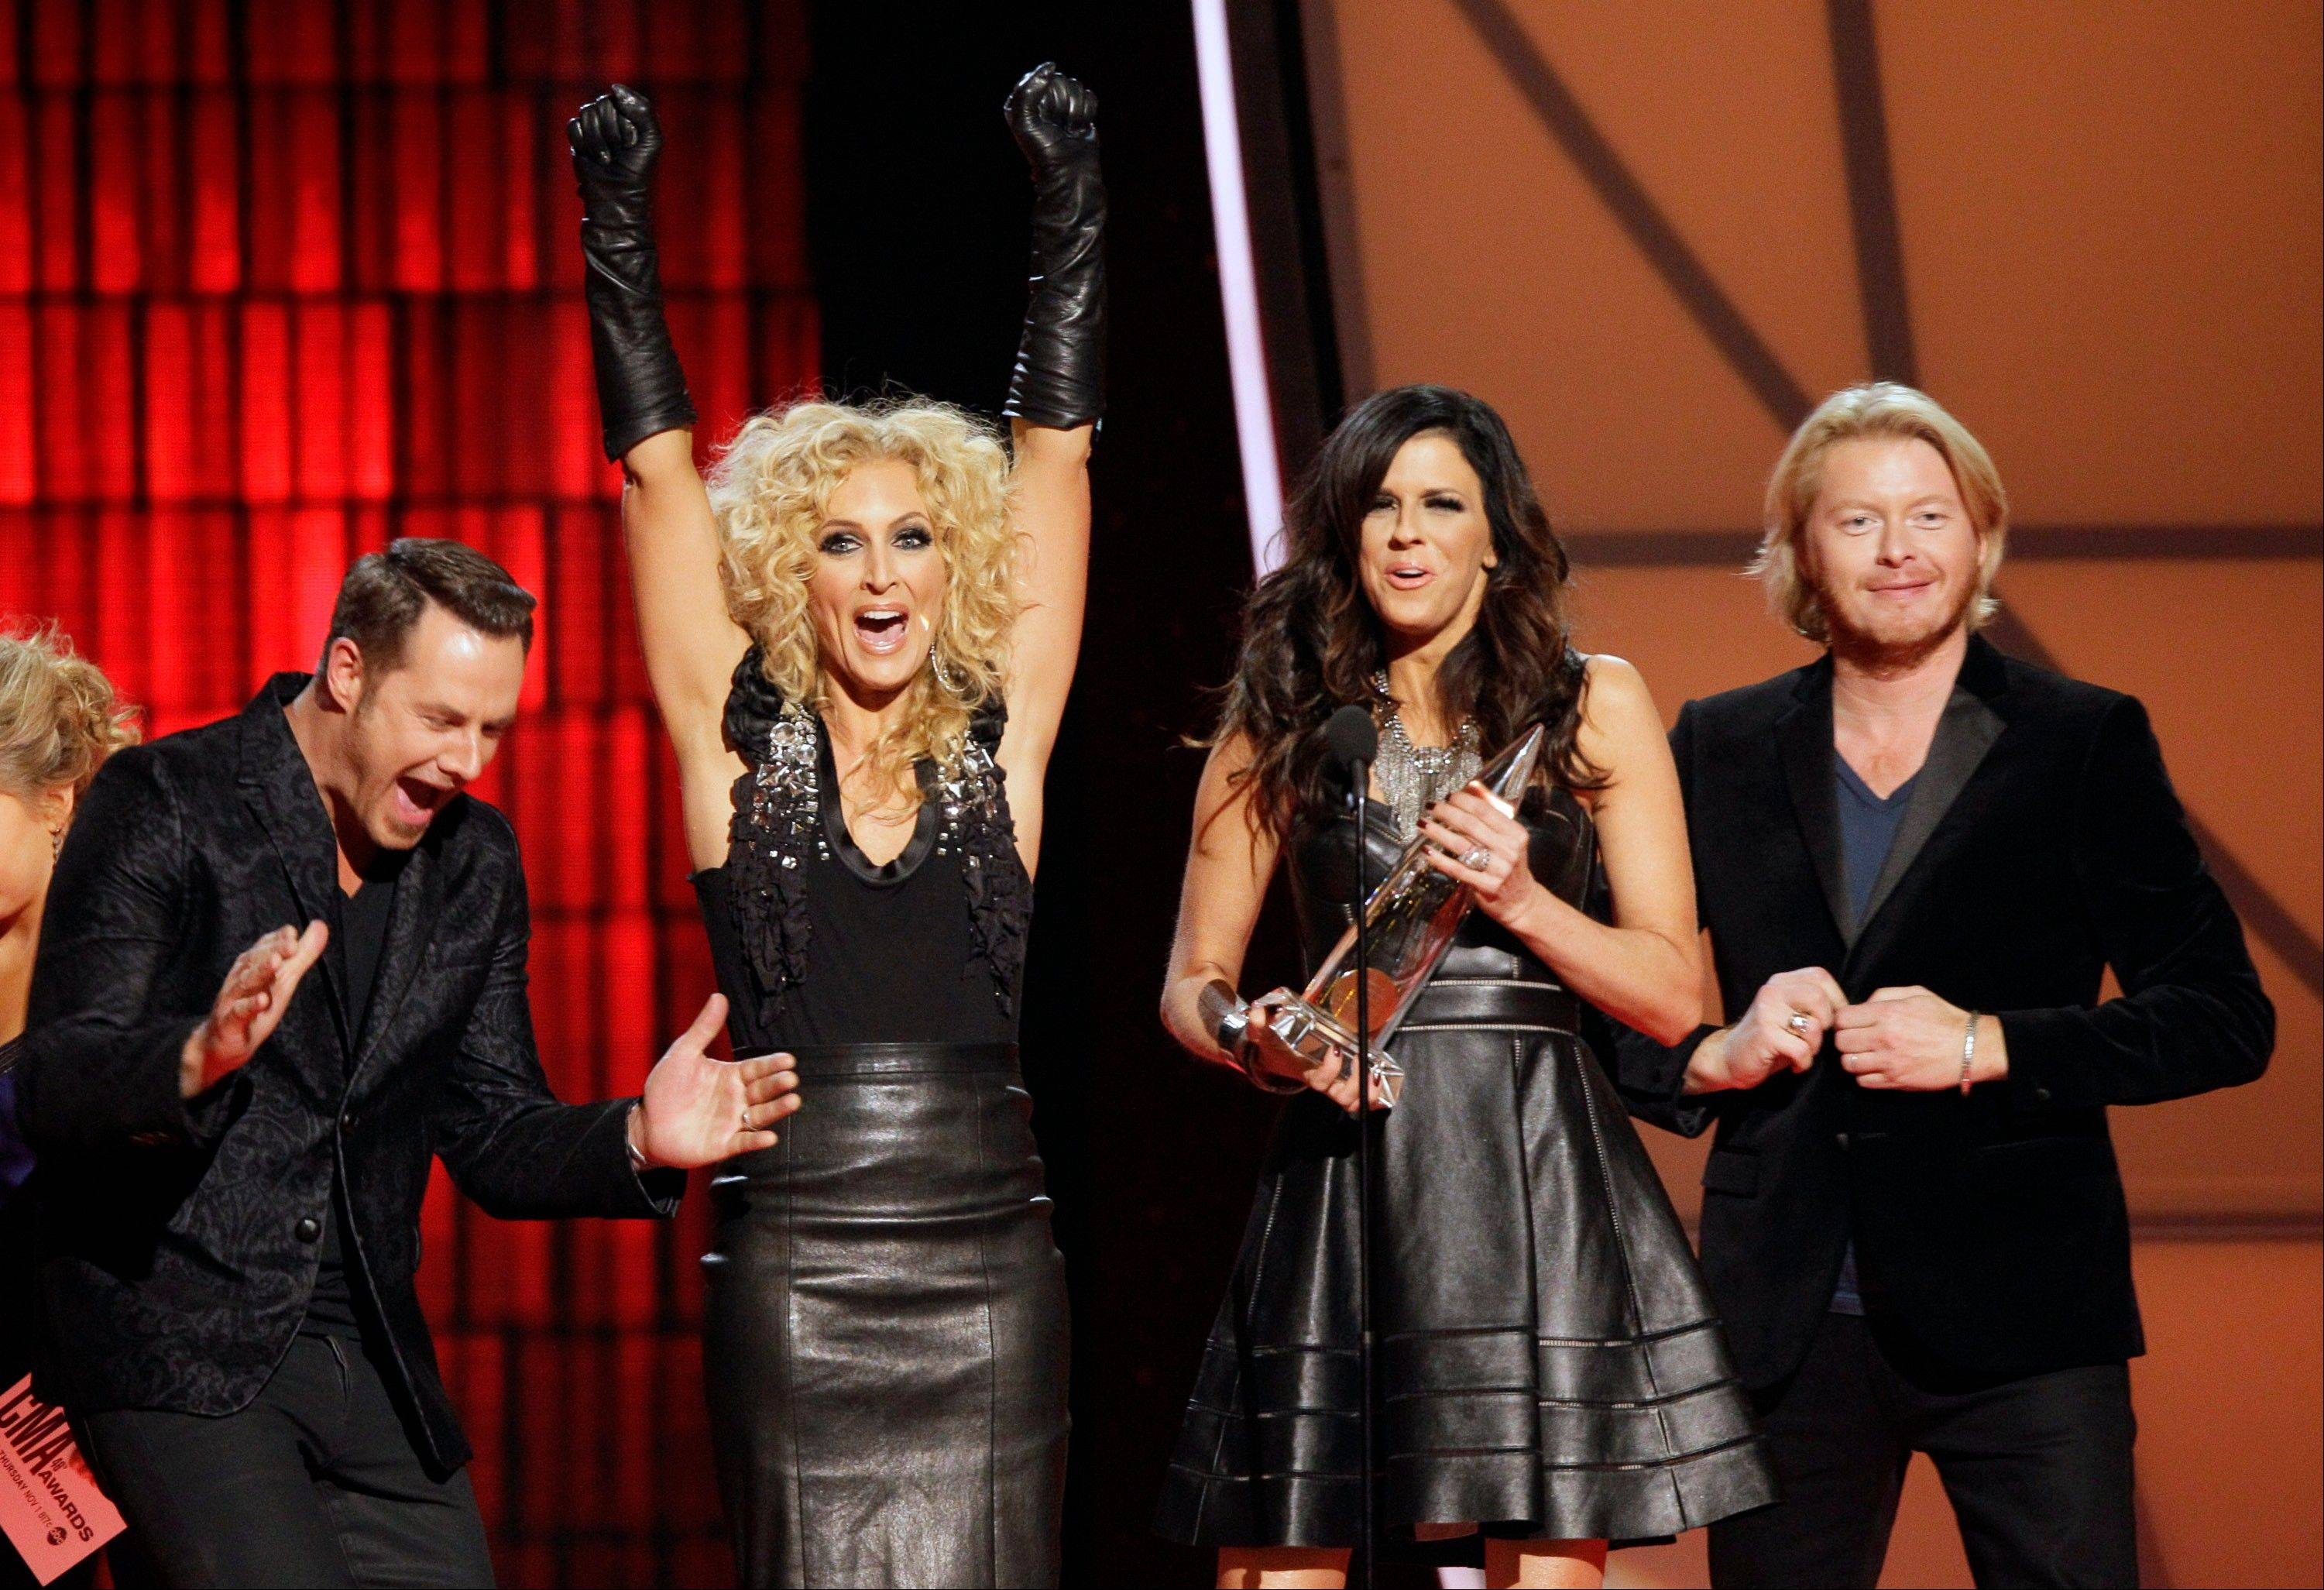 Jimi Westbrook, from left, Kimberly Schlapman, Karen Fairchild and Phillip Sweet, of Little Big Town, accept the award for vocal group of the year at the 46th Annual Country Music Awards at the Bridgestone Arena on Thursday, Nov. 1, 2012, in Nashville, Tenn.